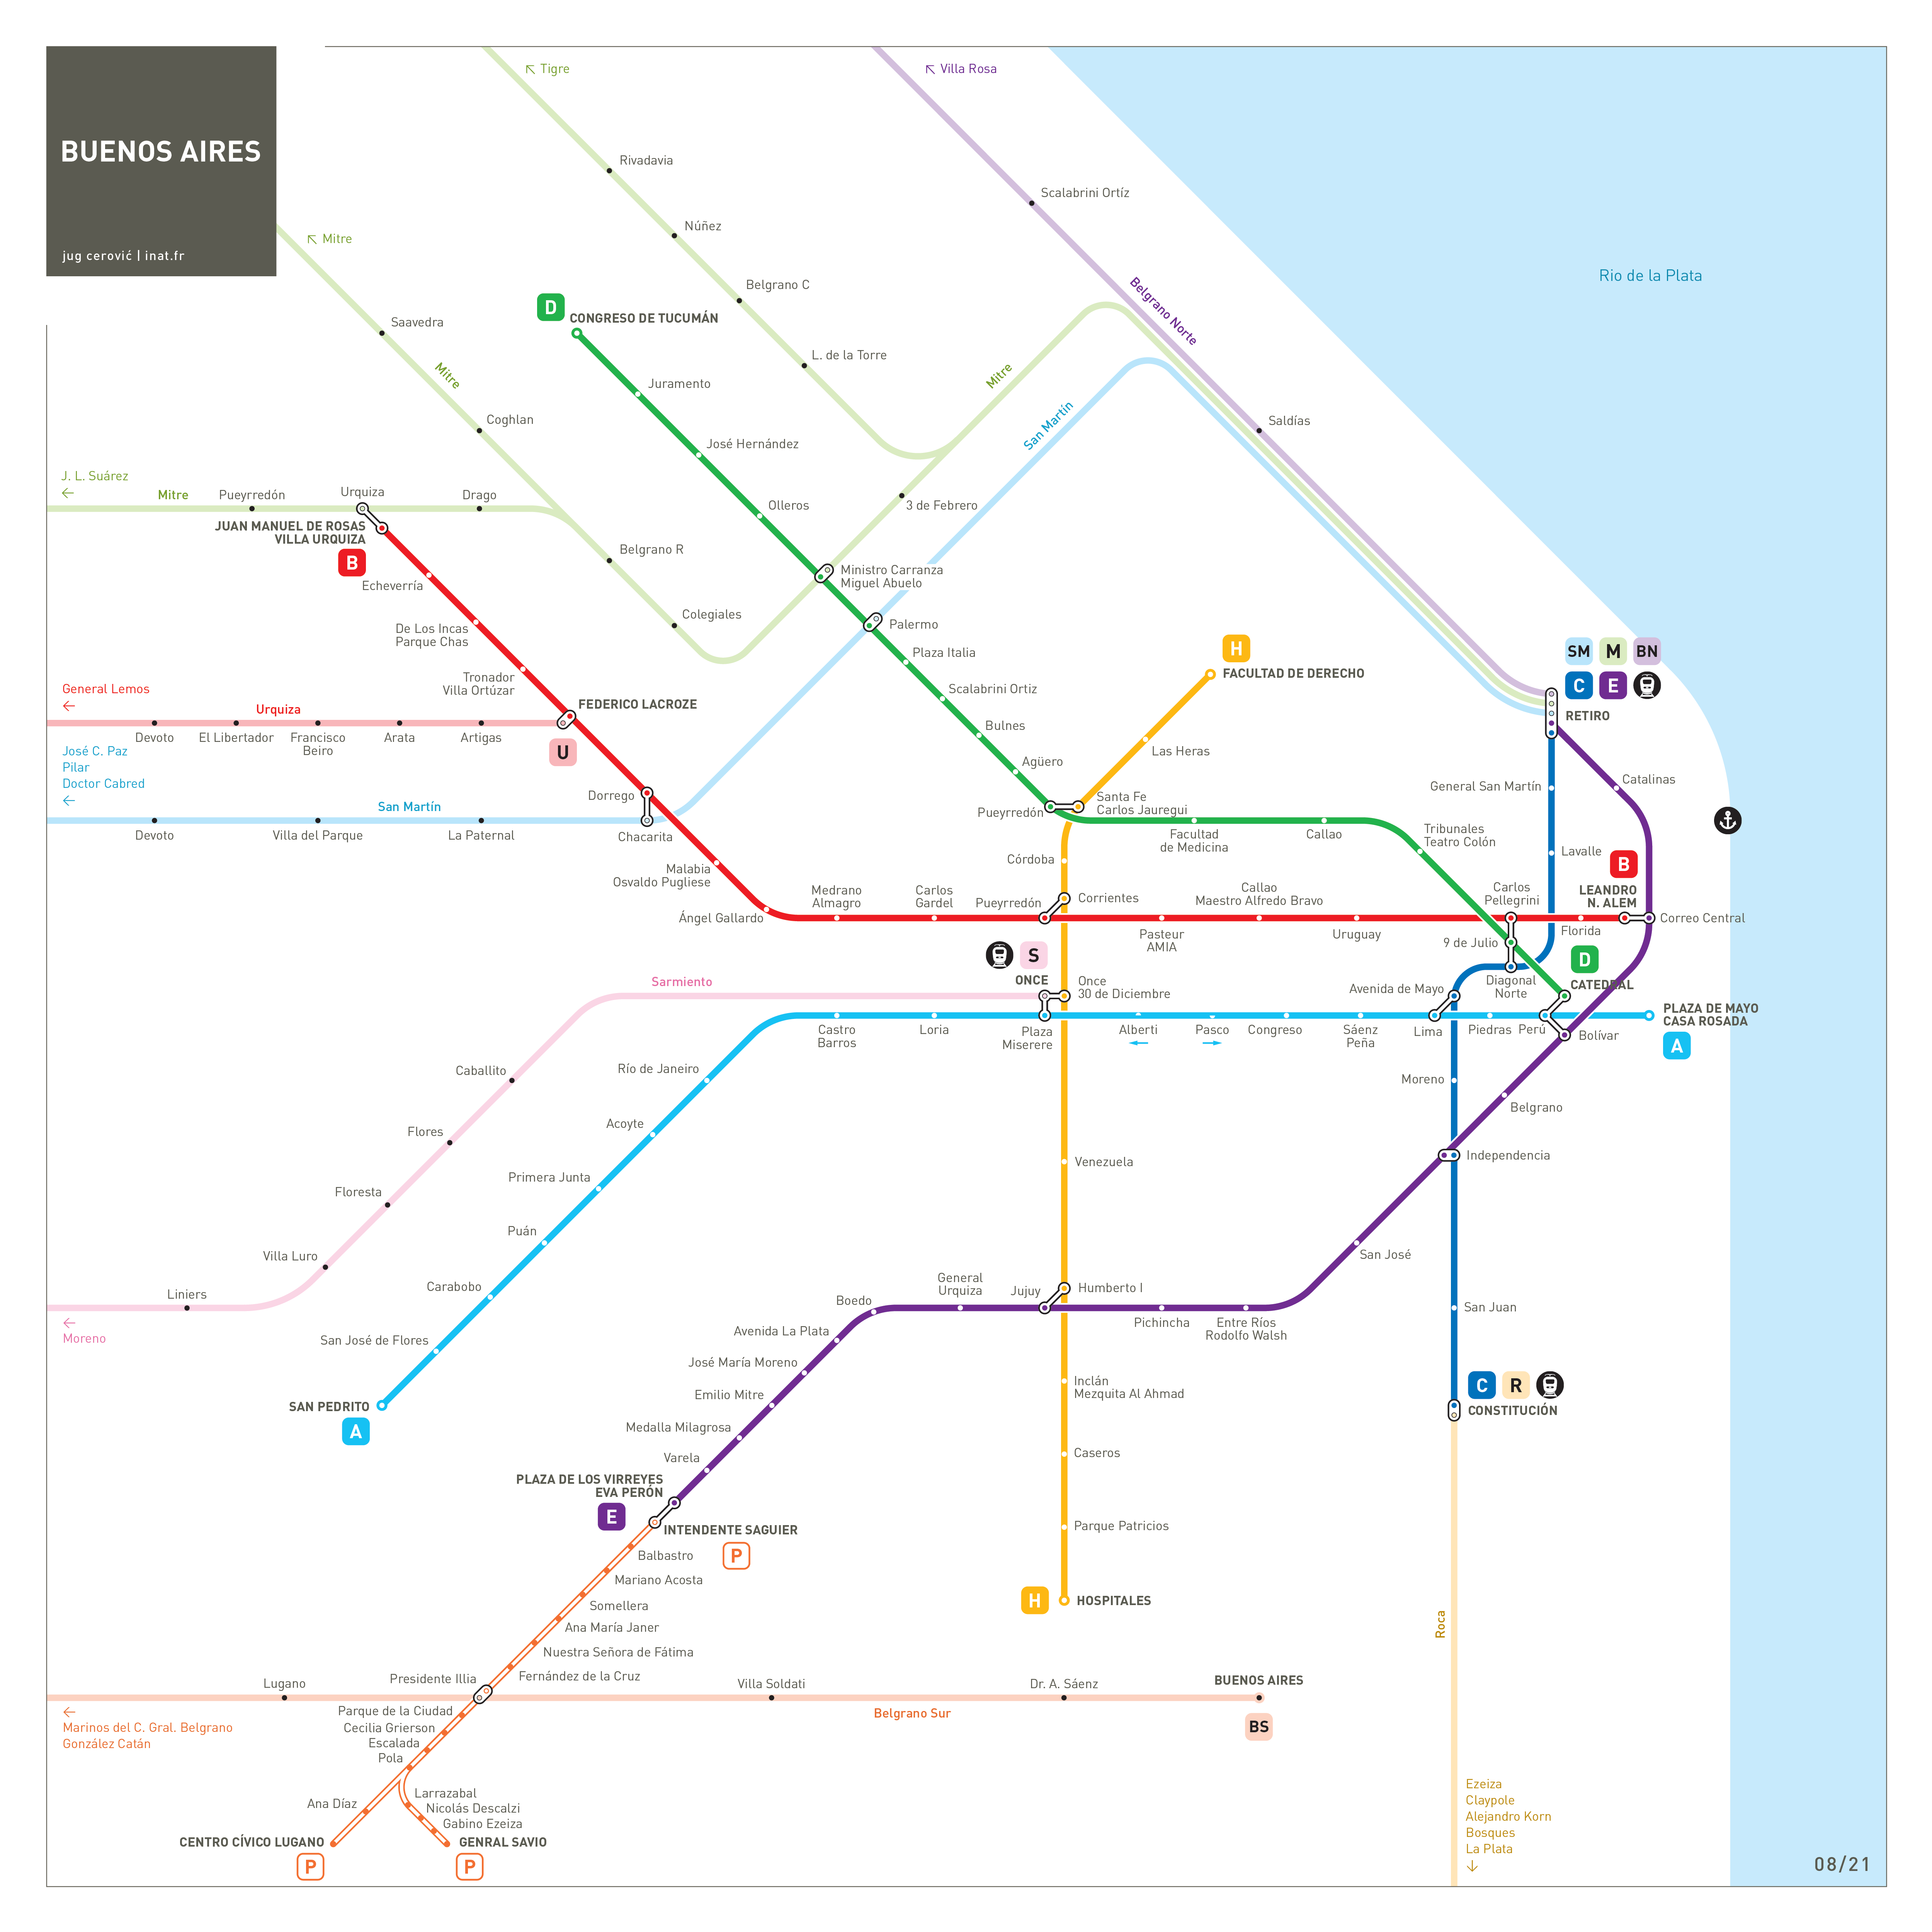 Buenos Aires metro map